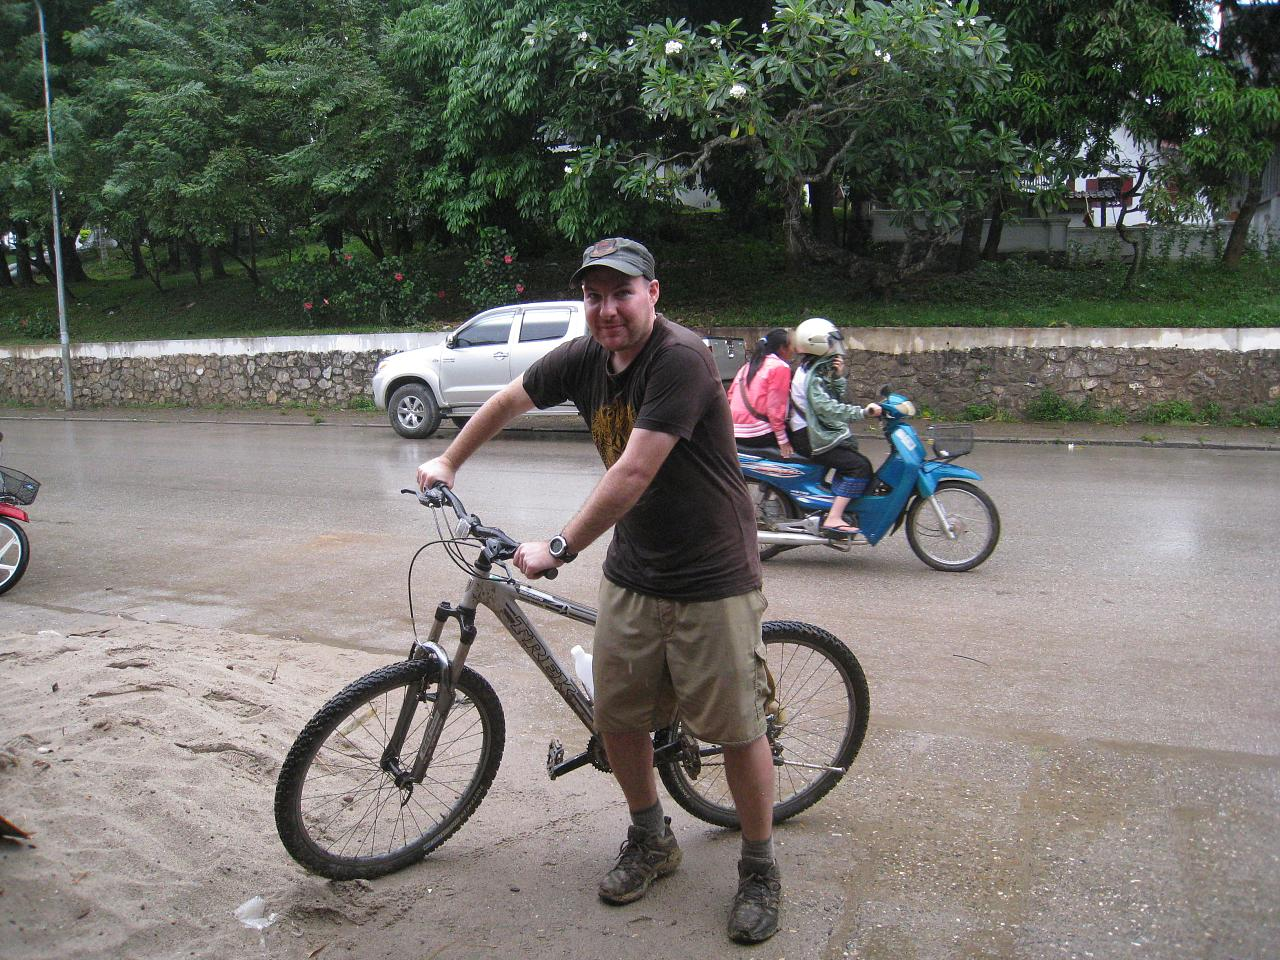 Soaking wet and saddle sore back in Luang Prabang